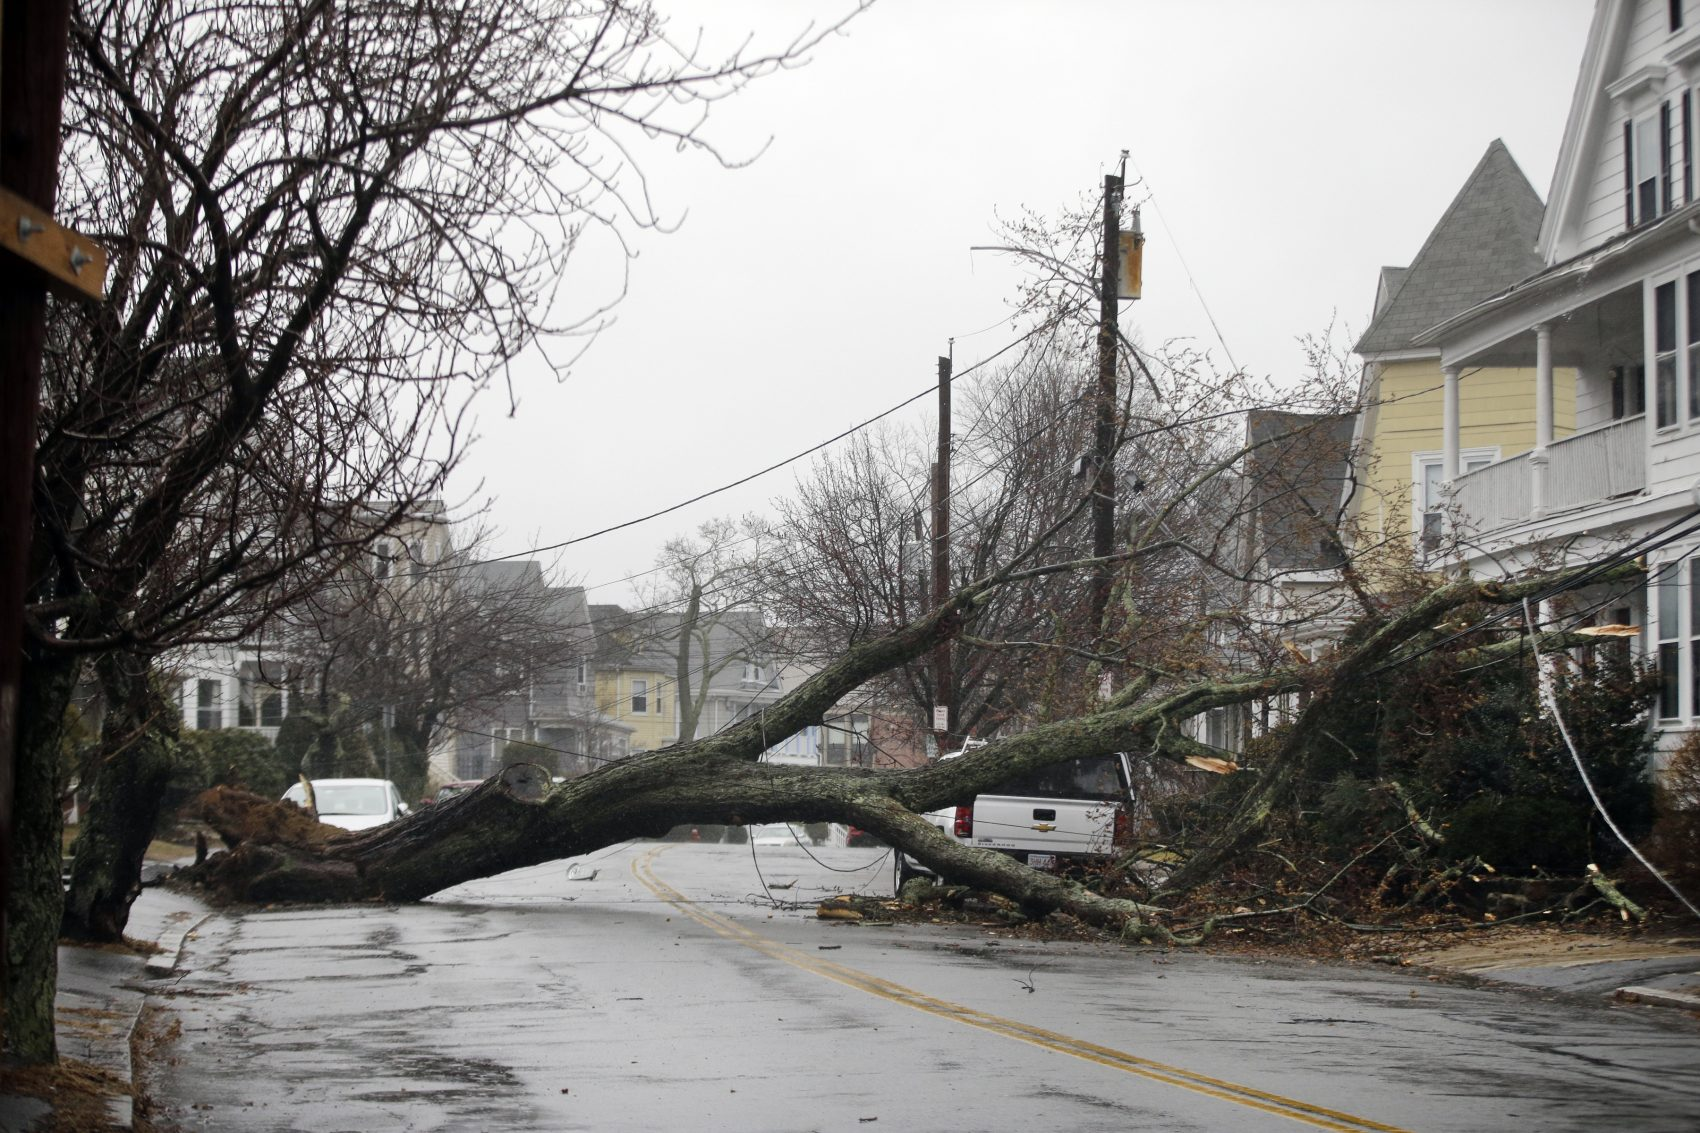 An uprooted tree blocks a residential street on Friday after taking down a power line in Swampscott. (Elise Amendola/AP)